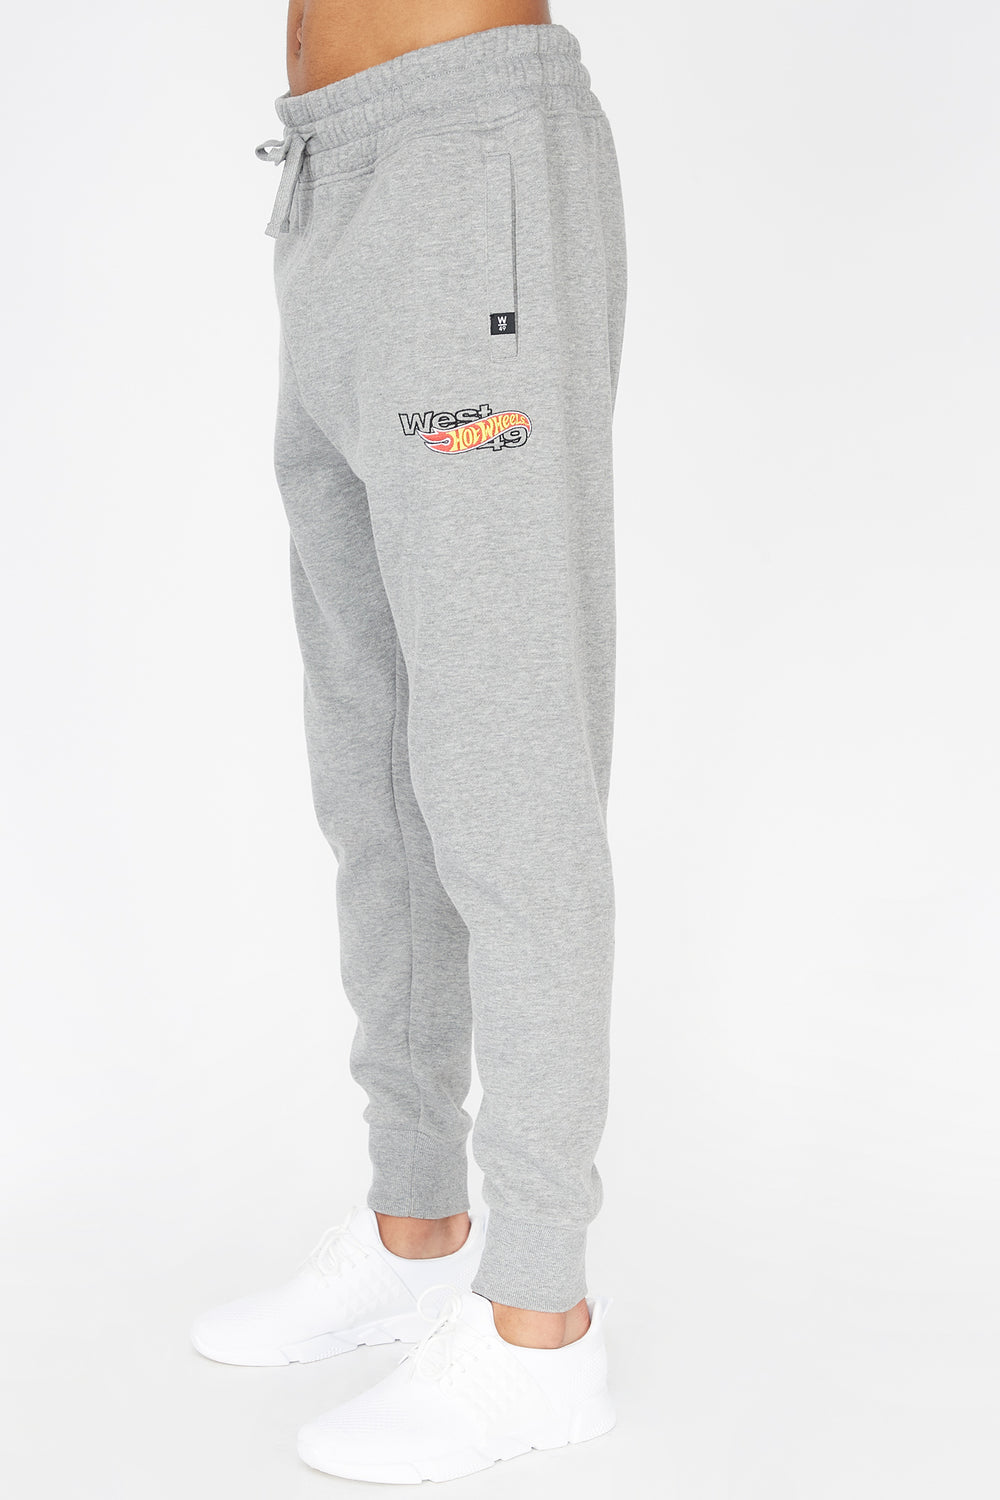 Jogger Hot Wheels X West49 Homme Gris